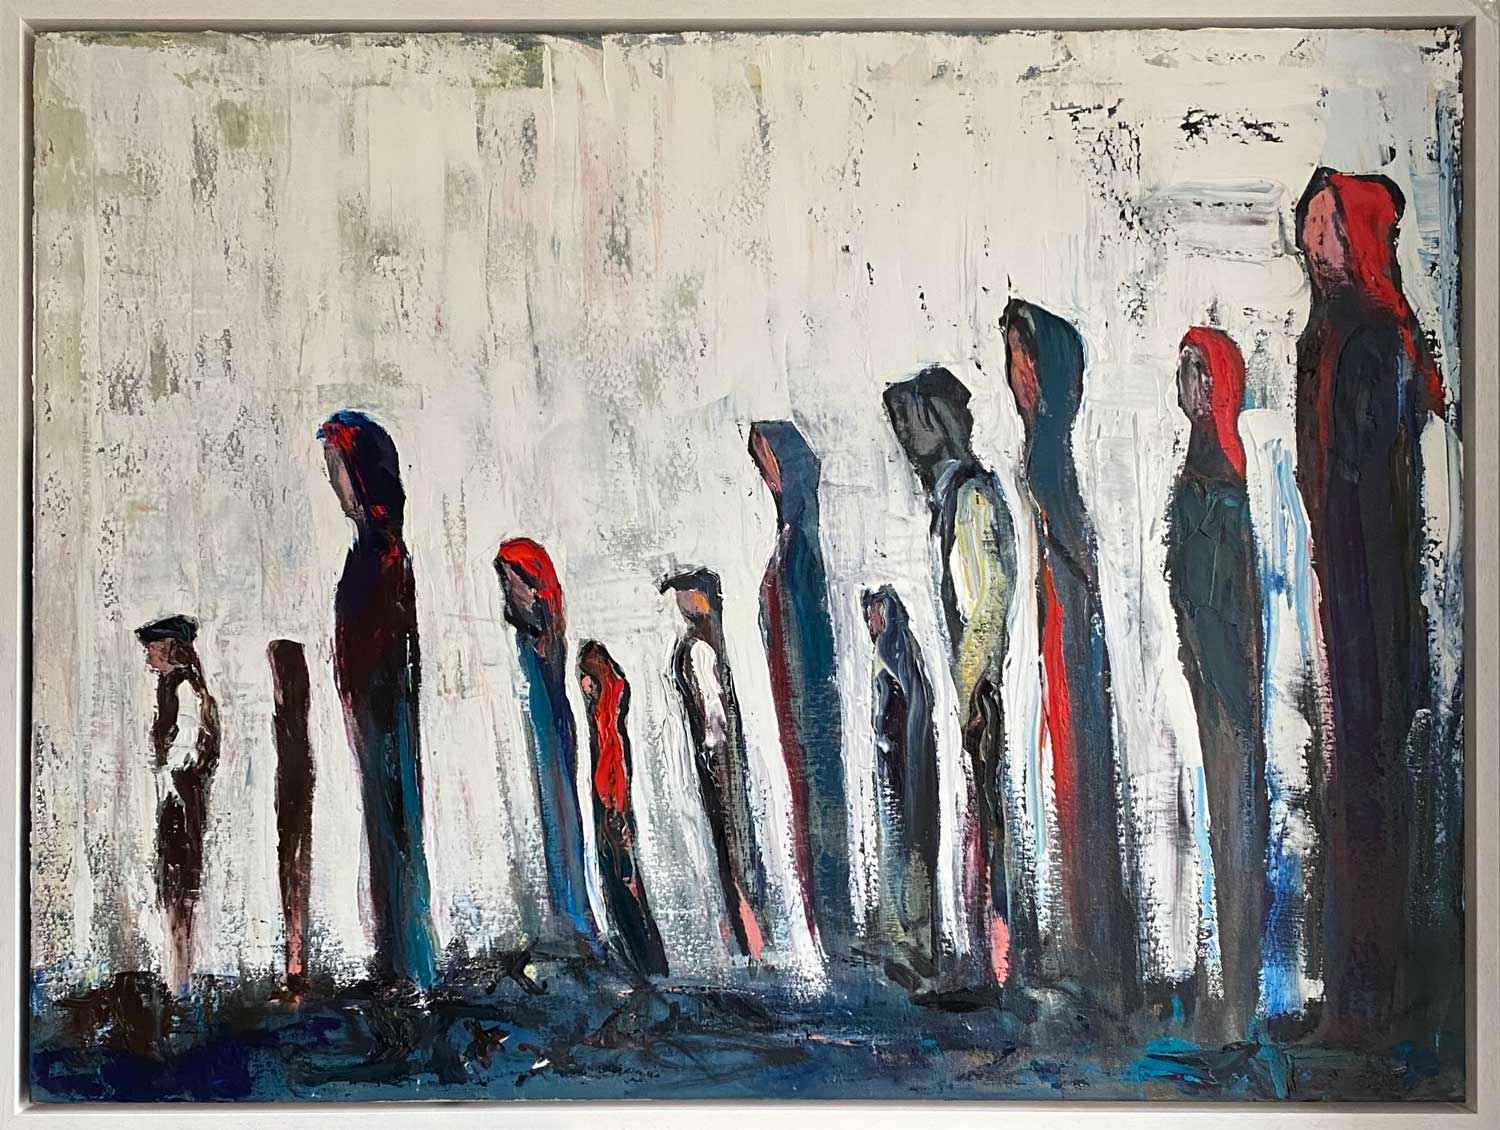 The Workhouse Queue - Part of the Old Ireland Series by Emily McCormack